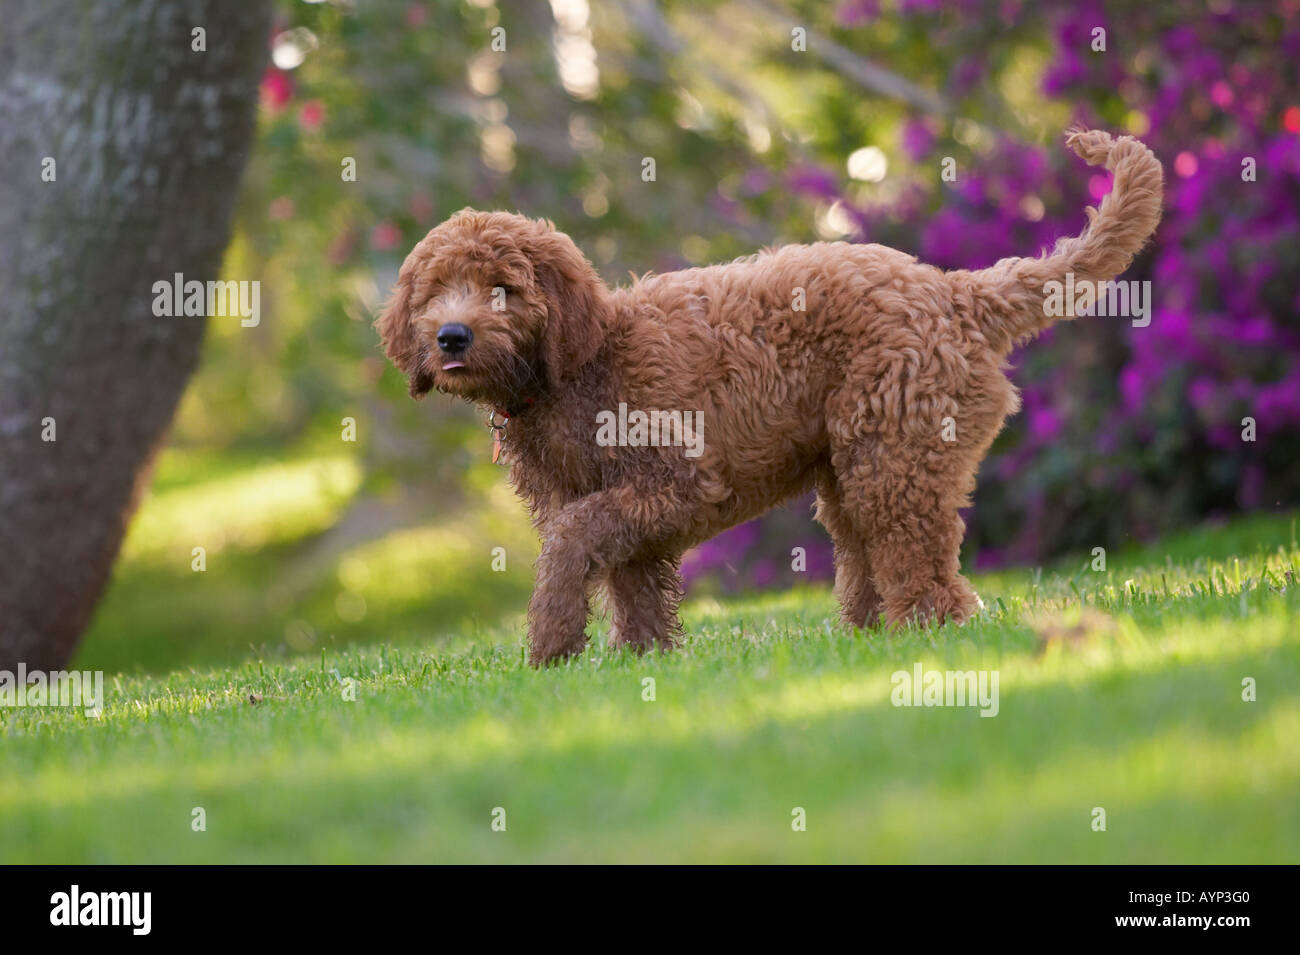 golden doodle hund welpe hunde retriver pudel gr nen rasen blumen str ucher stockfoto bild. Black Bedroom Furniture Sets. Home Design Ideas